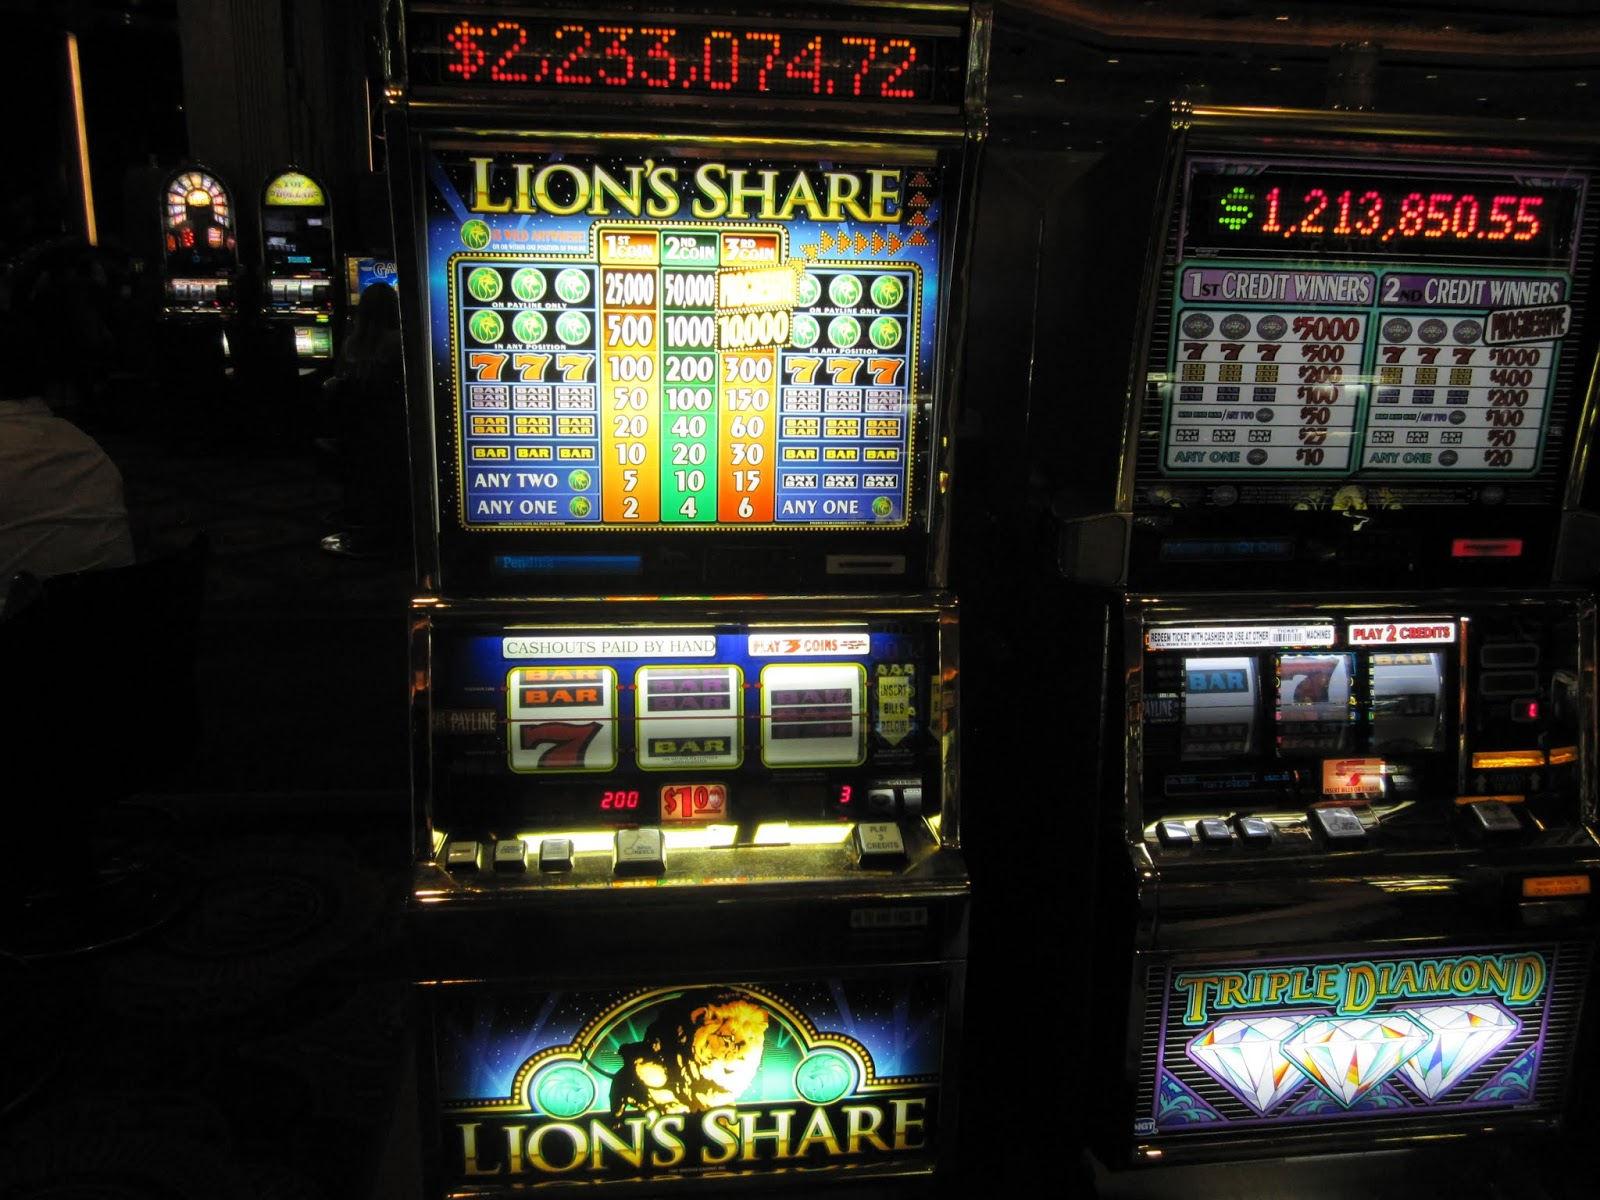 Las vegas slot machine payout ratio